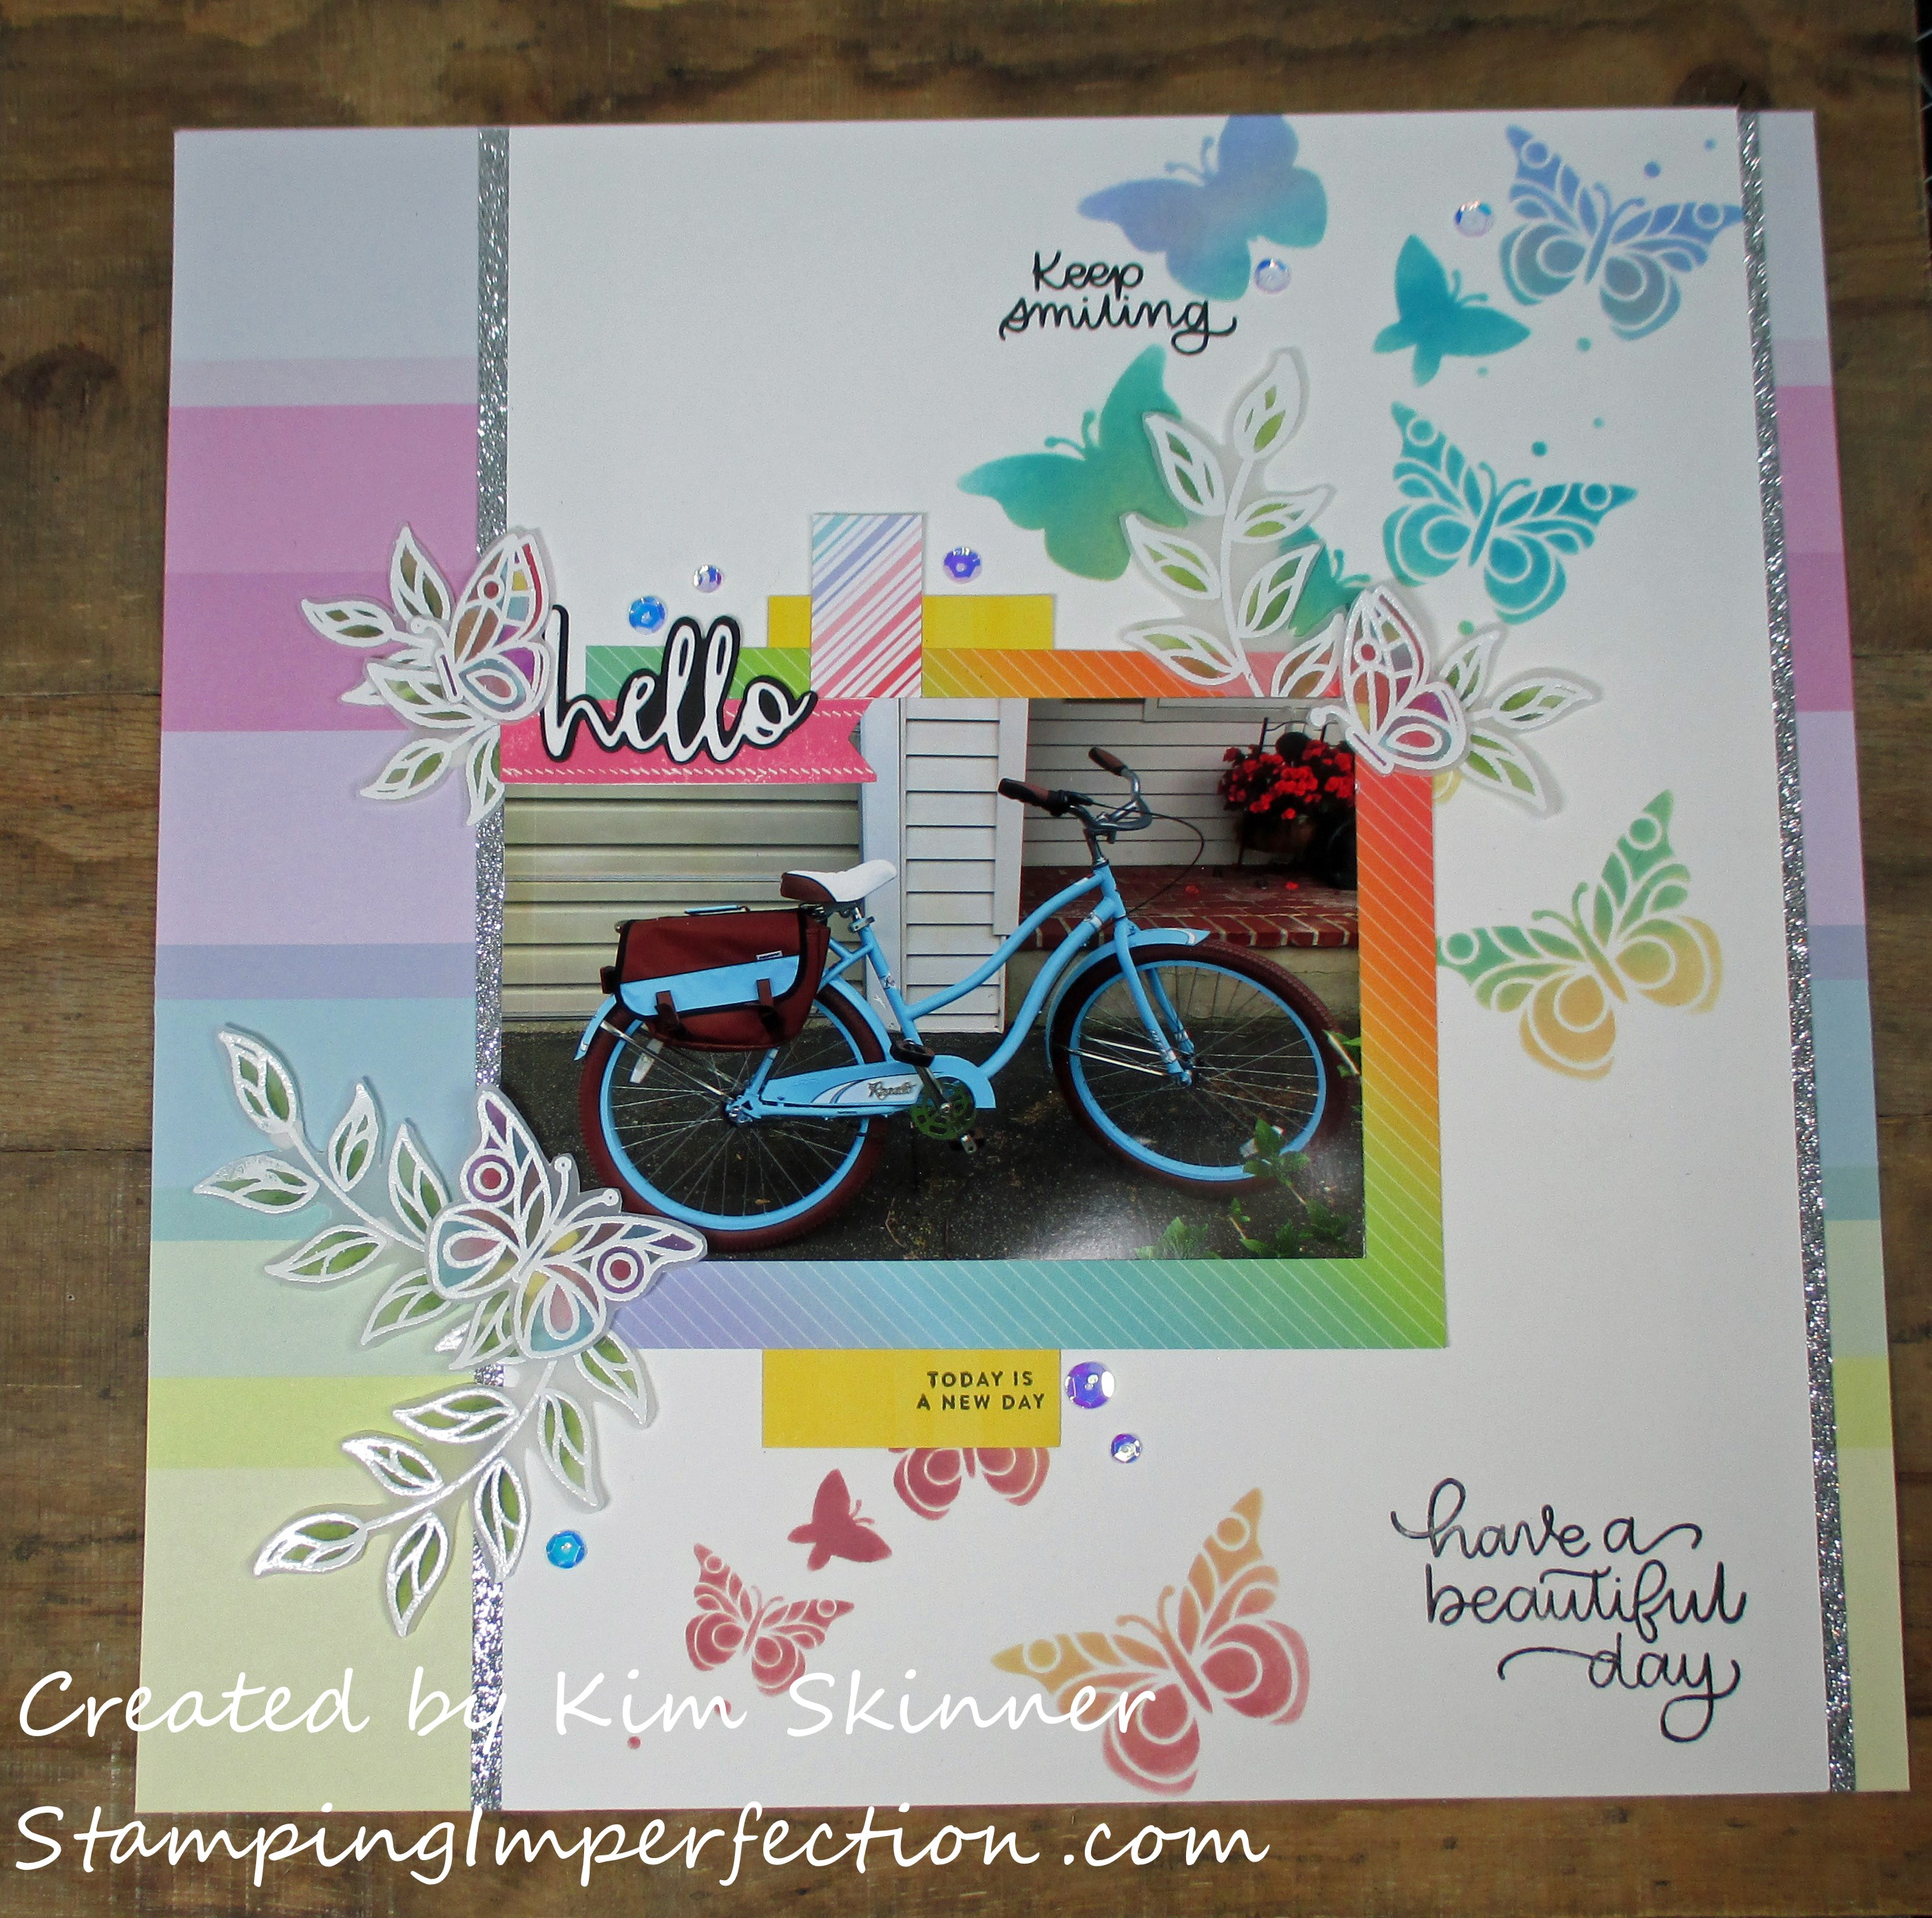 Stamping Imperfection Distress Oxide and Stencil Scrapbook Layout